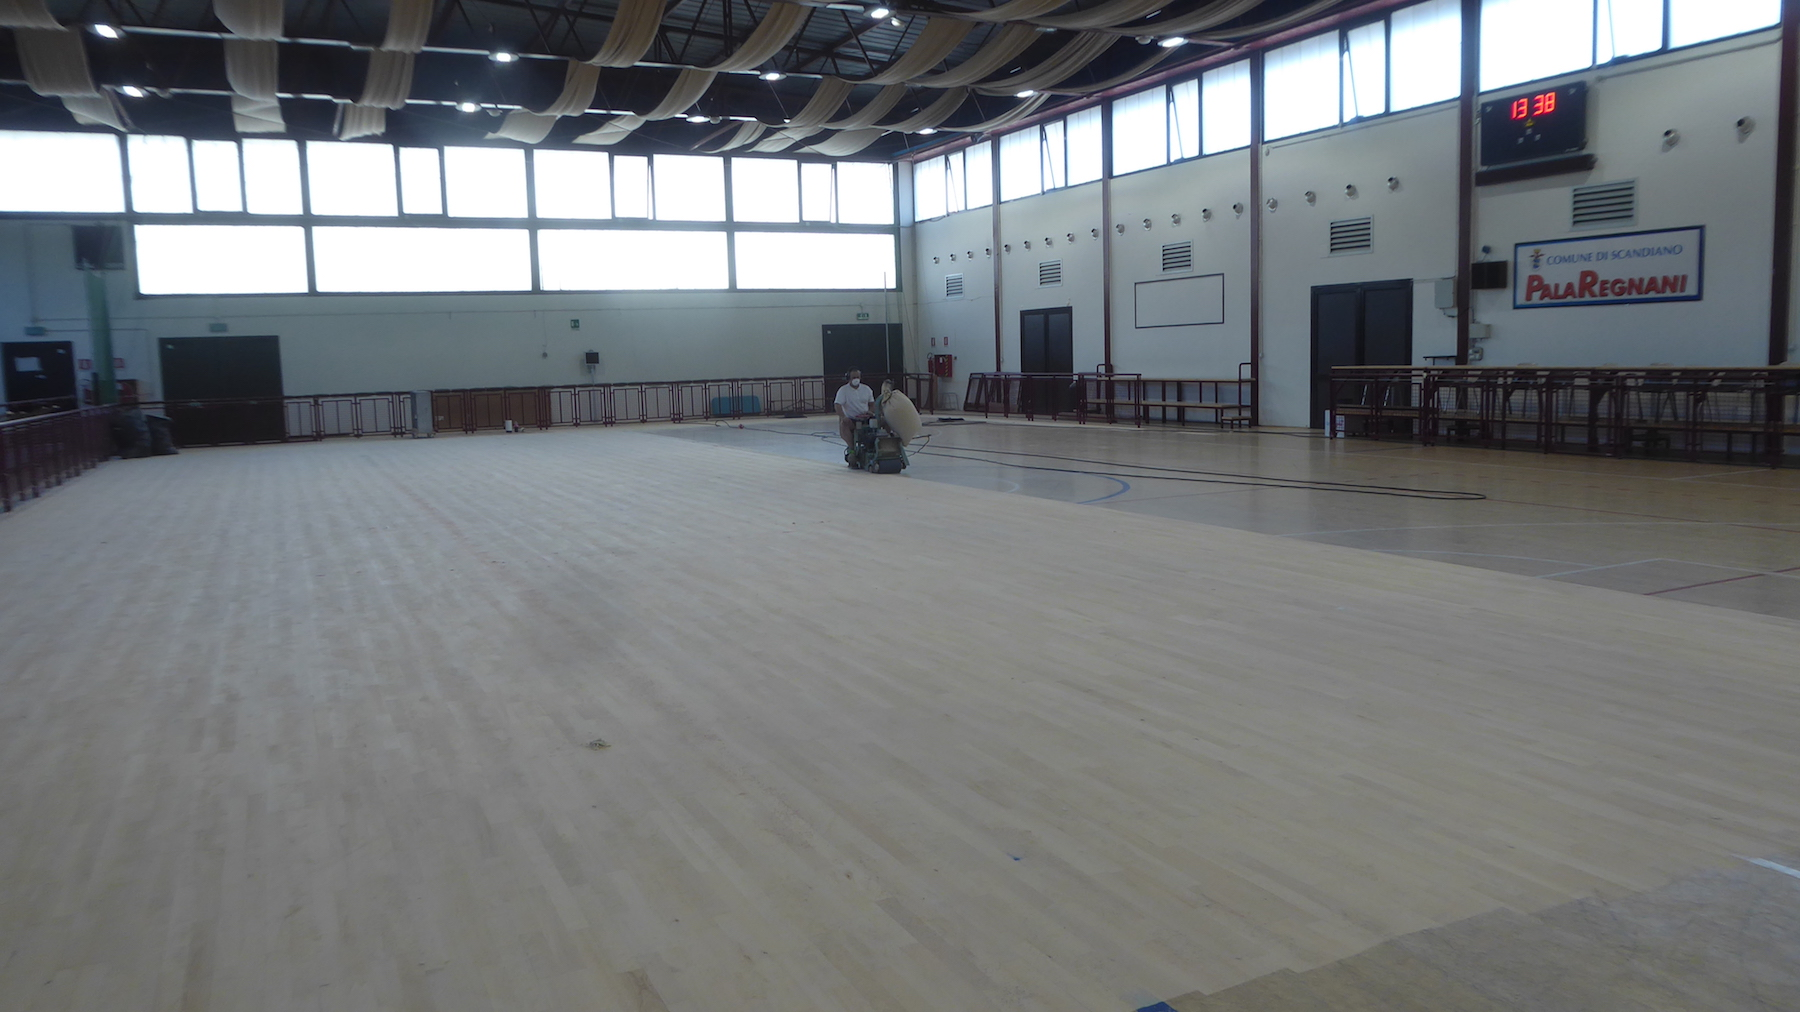 The various repairs carried out on the sports flooring